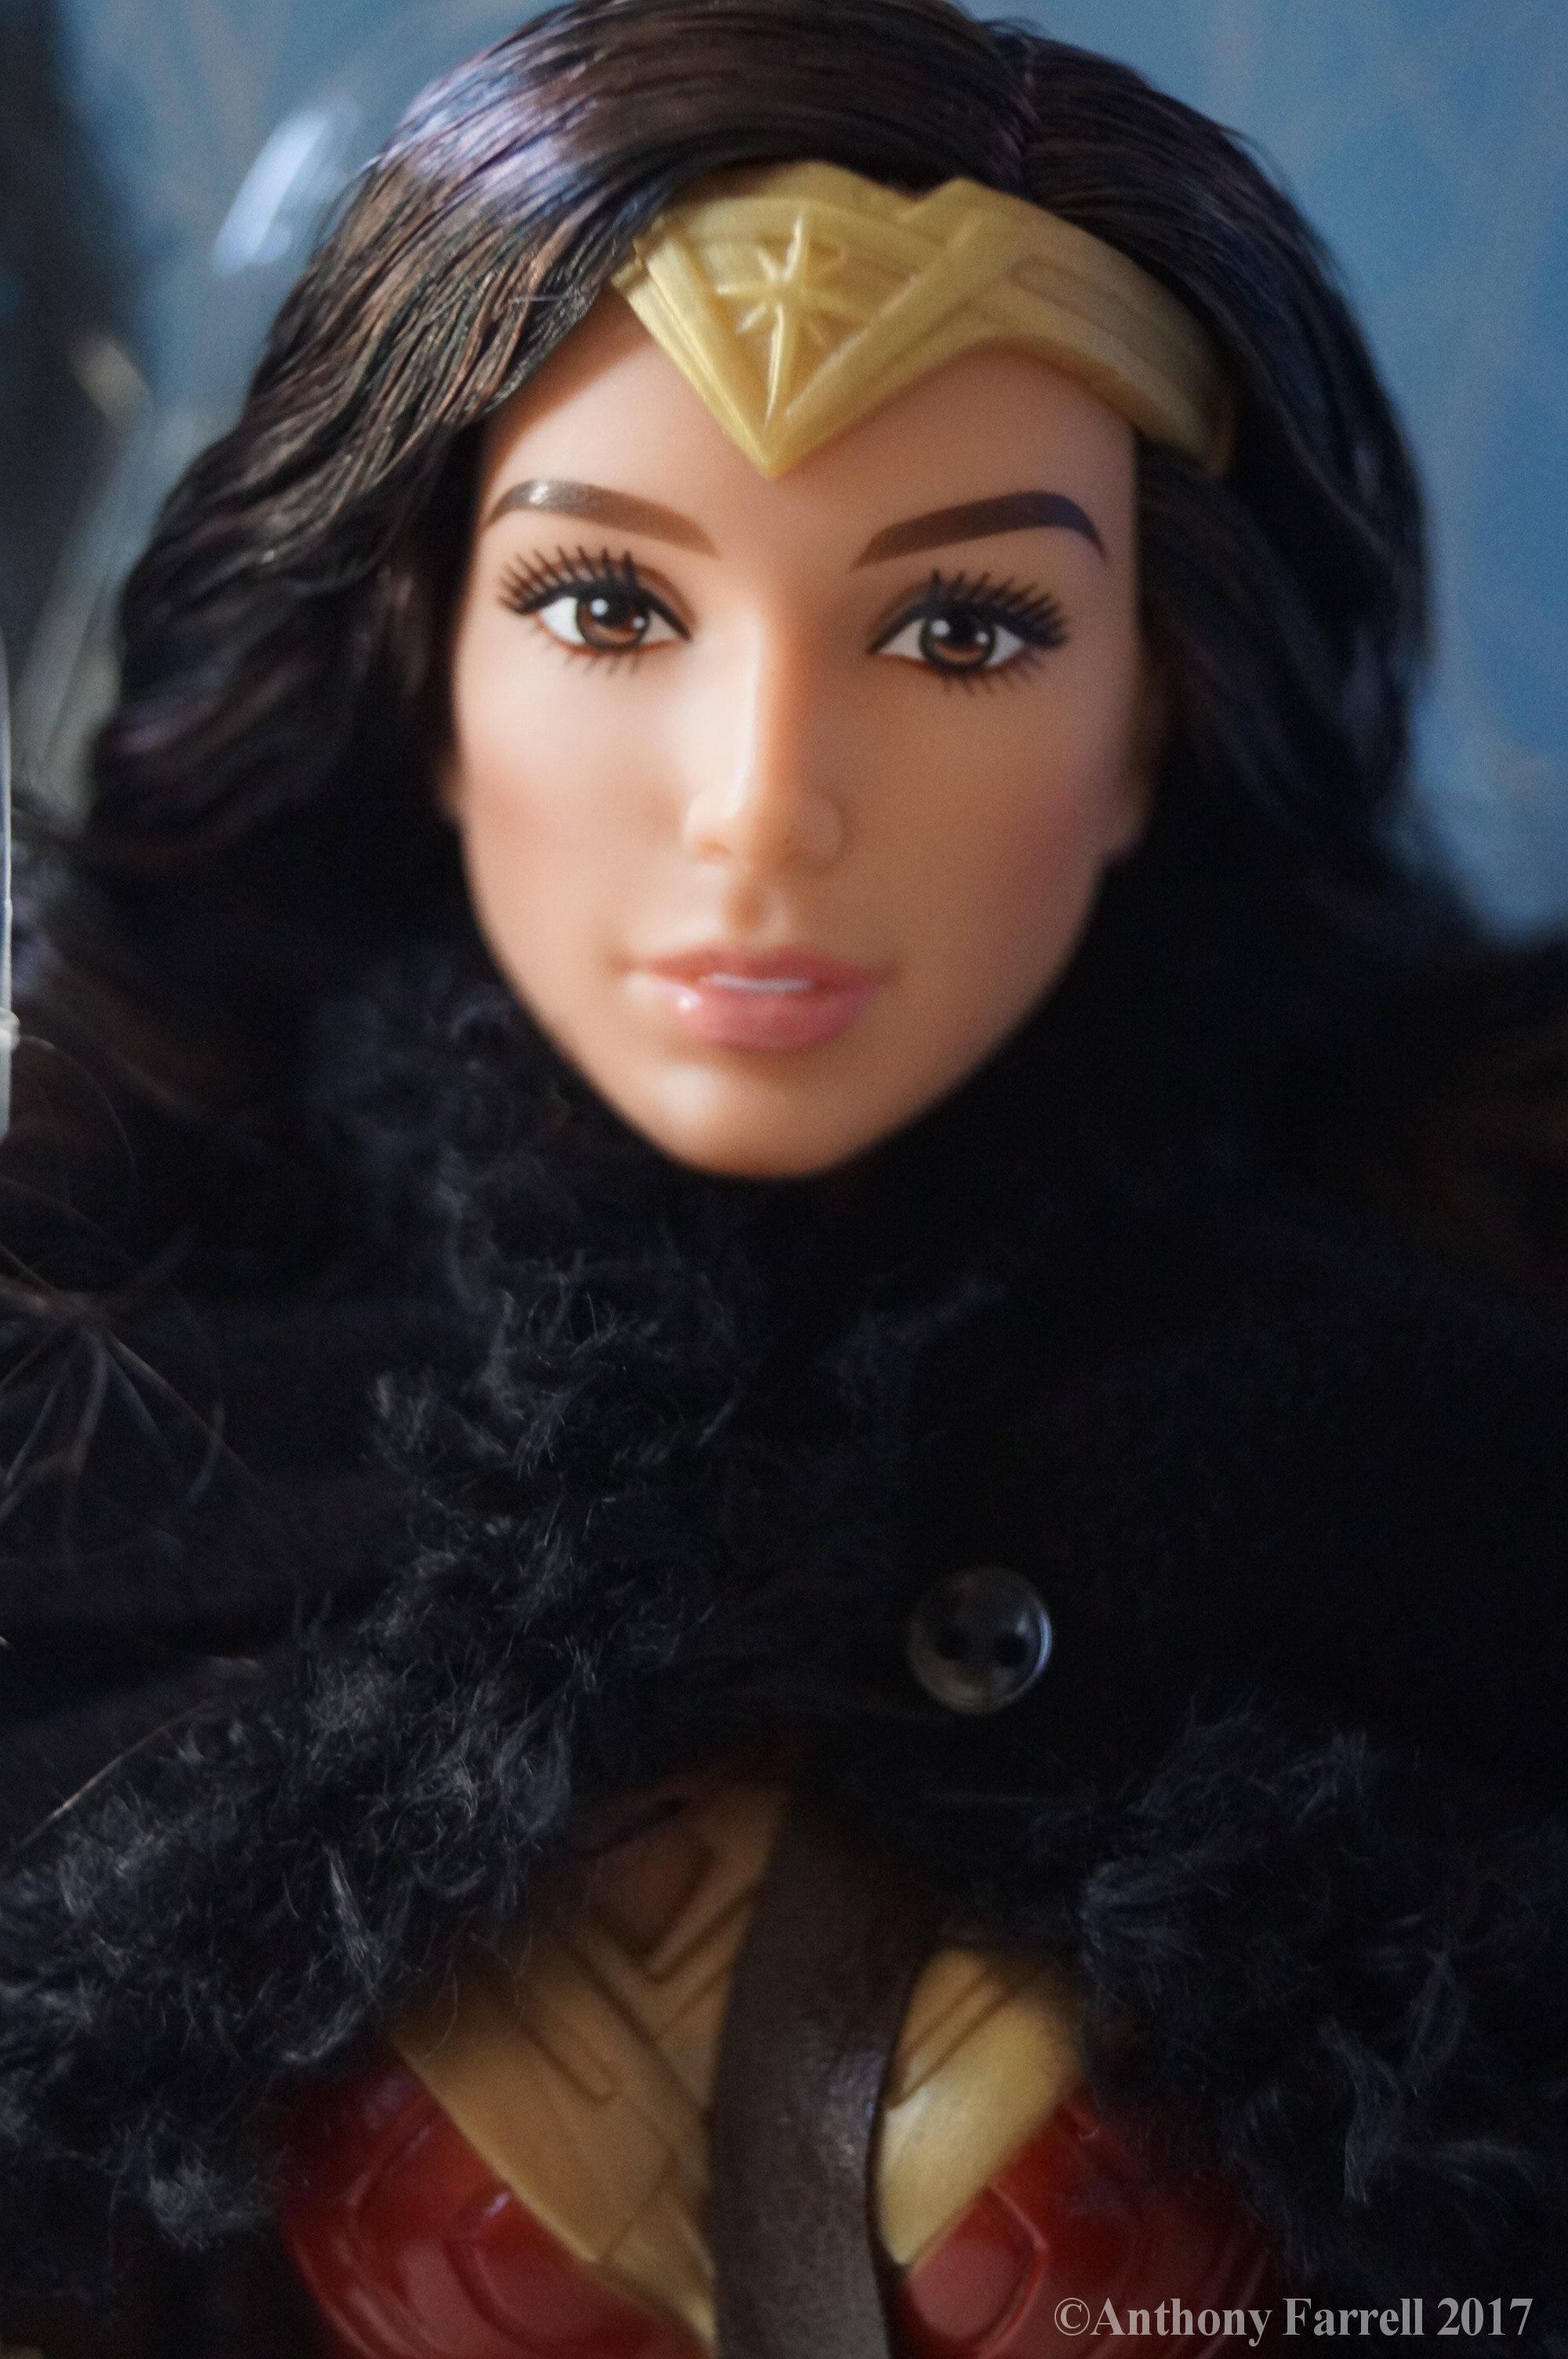 Doll review 2017 black label queen hippolyta doll face three - This Black Label Release Comes With A Certificate Of Authenticity And Remains An Non Numbered Limited Edition Release